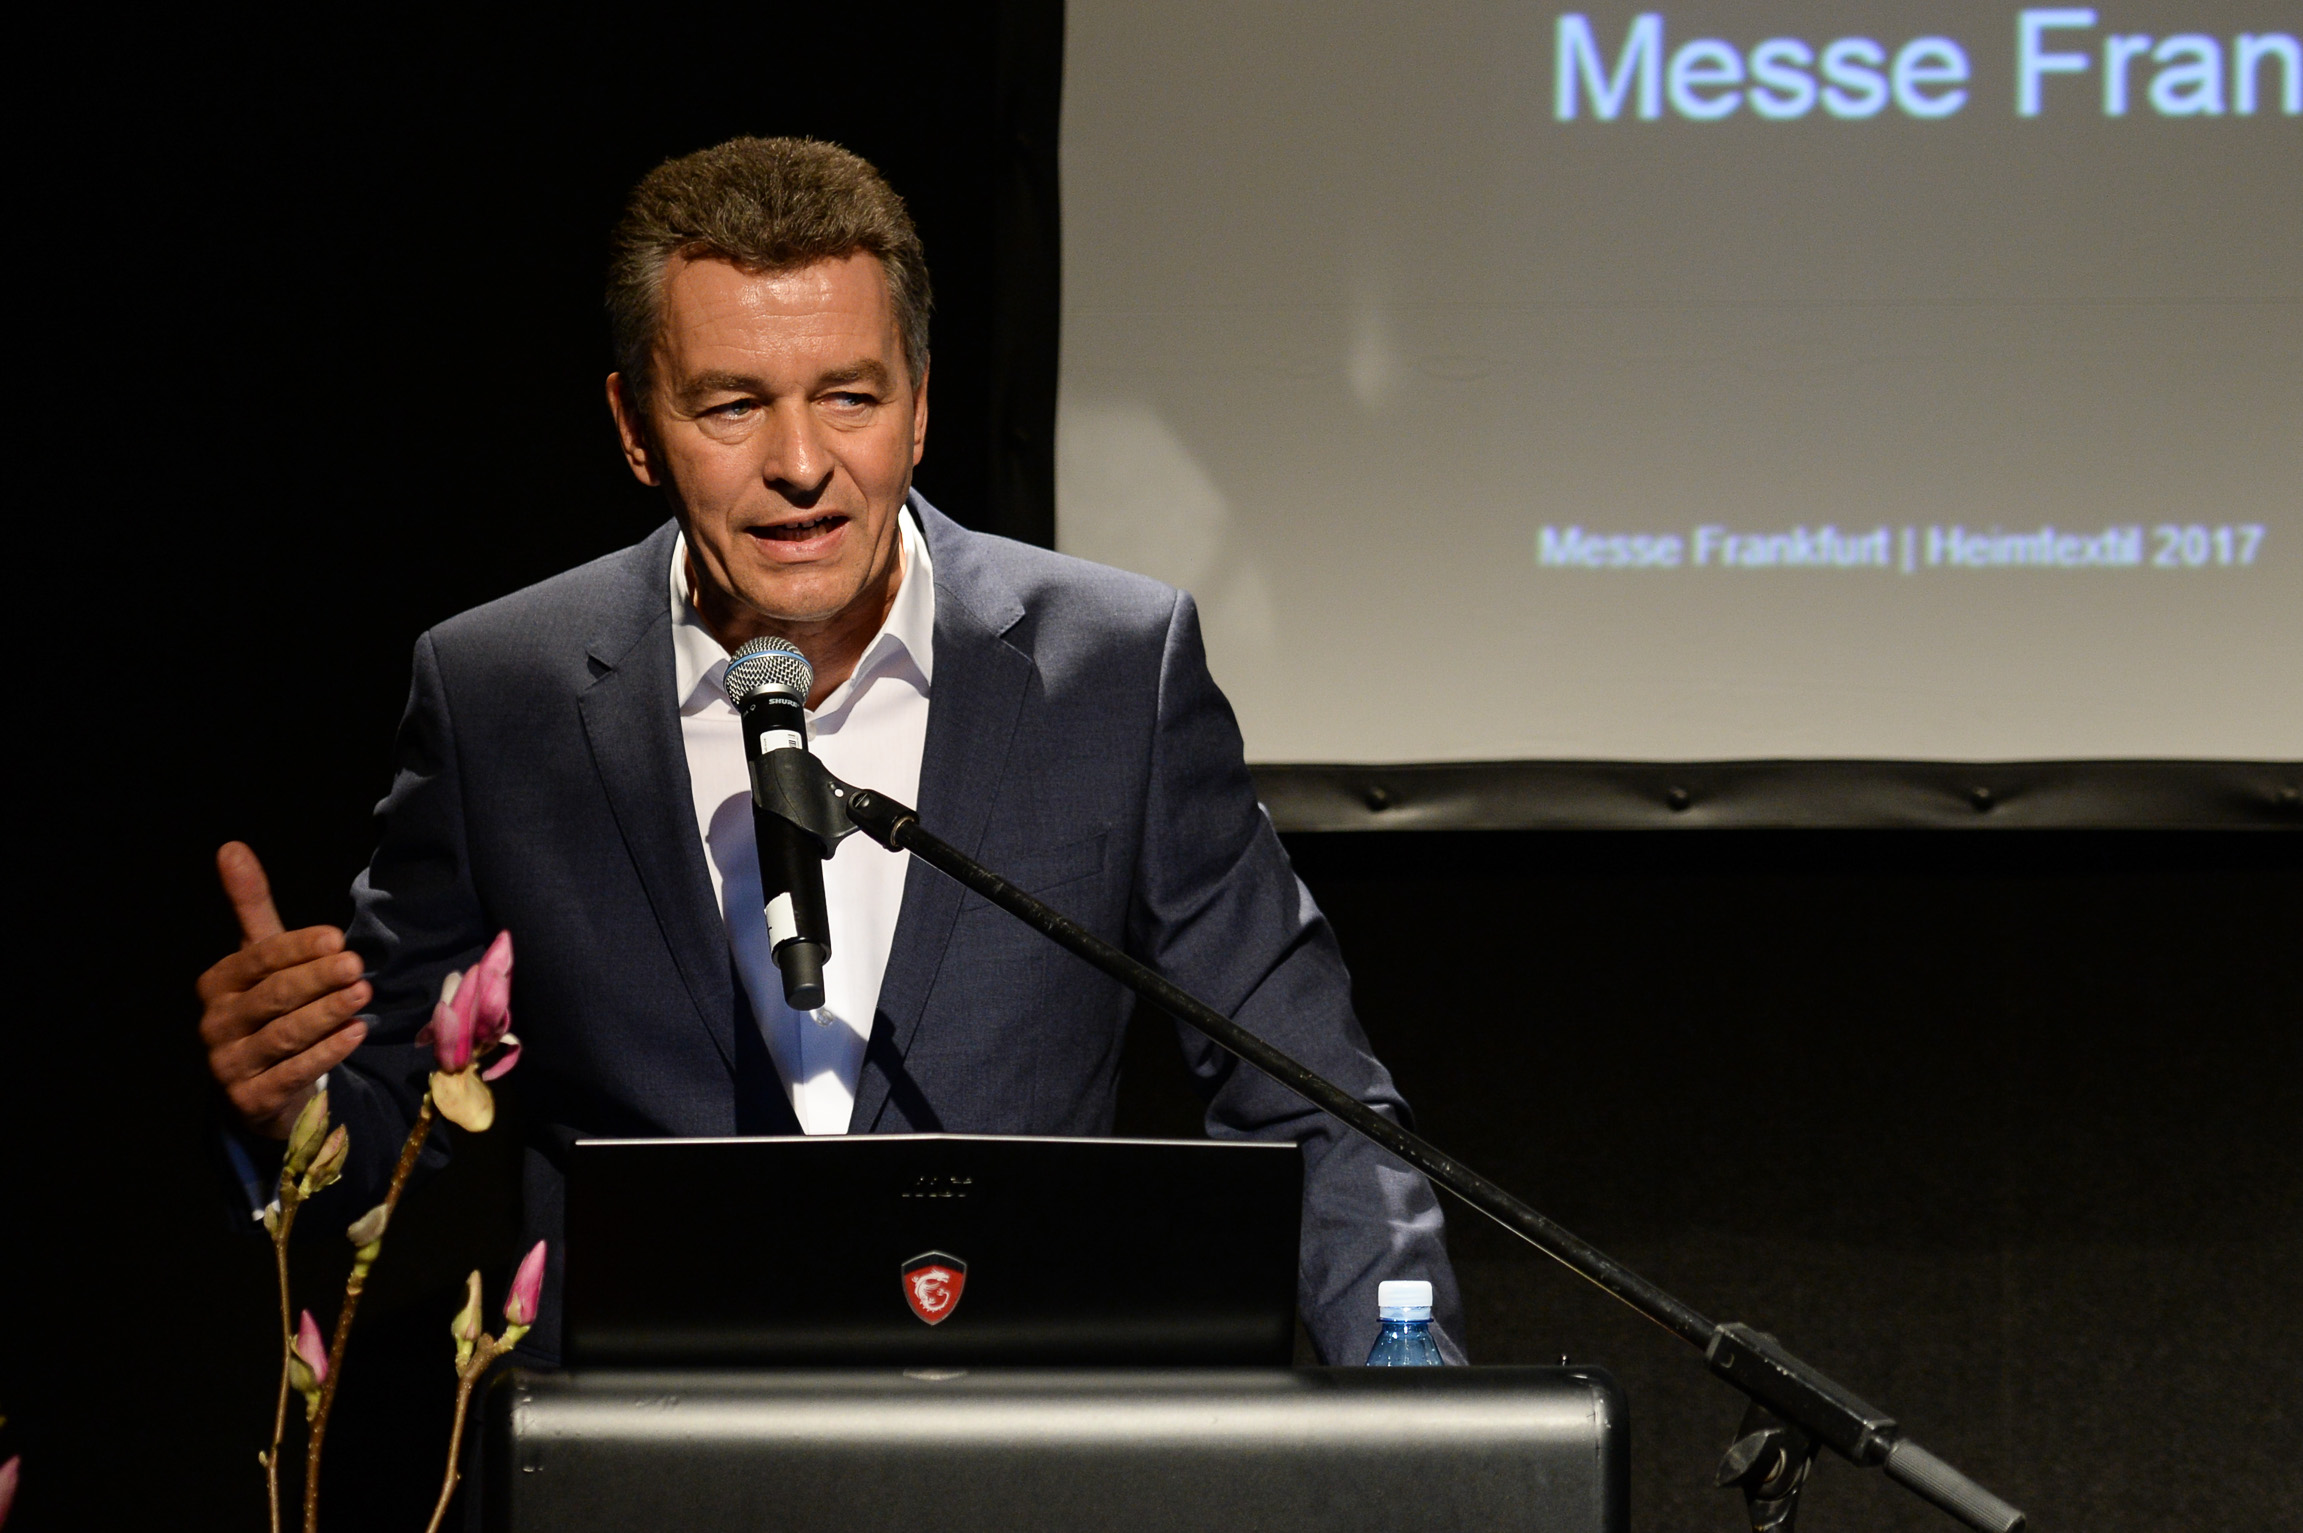 Opening press conference, Detlef Braun, Member of the Executive Board of MesseFrankfurt Exhibition GmbH